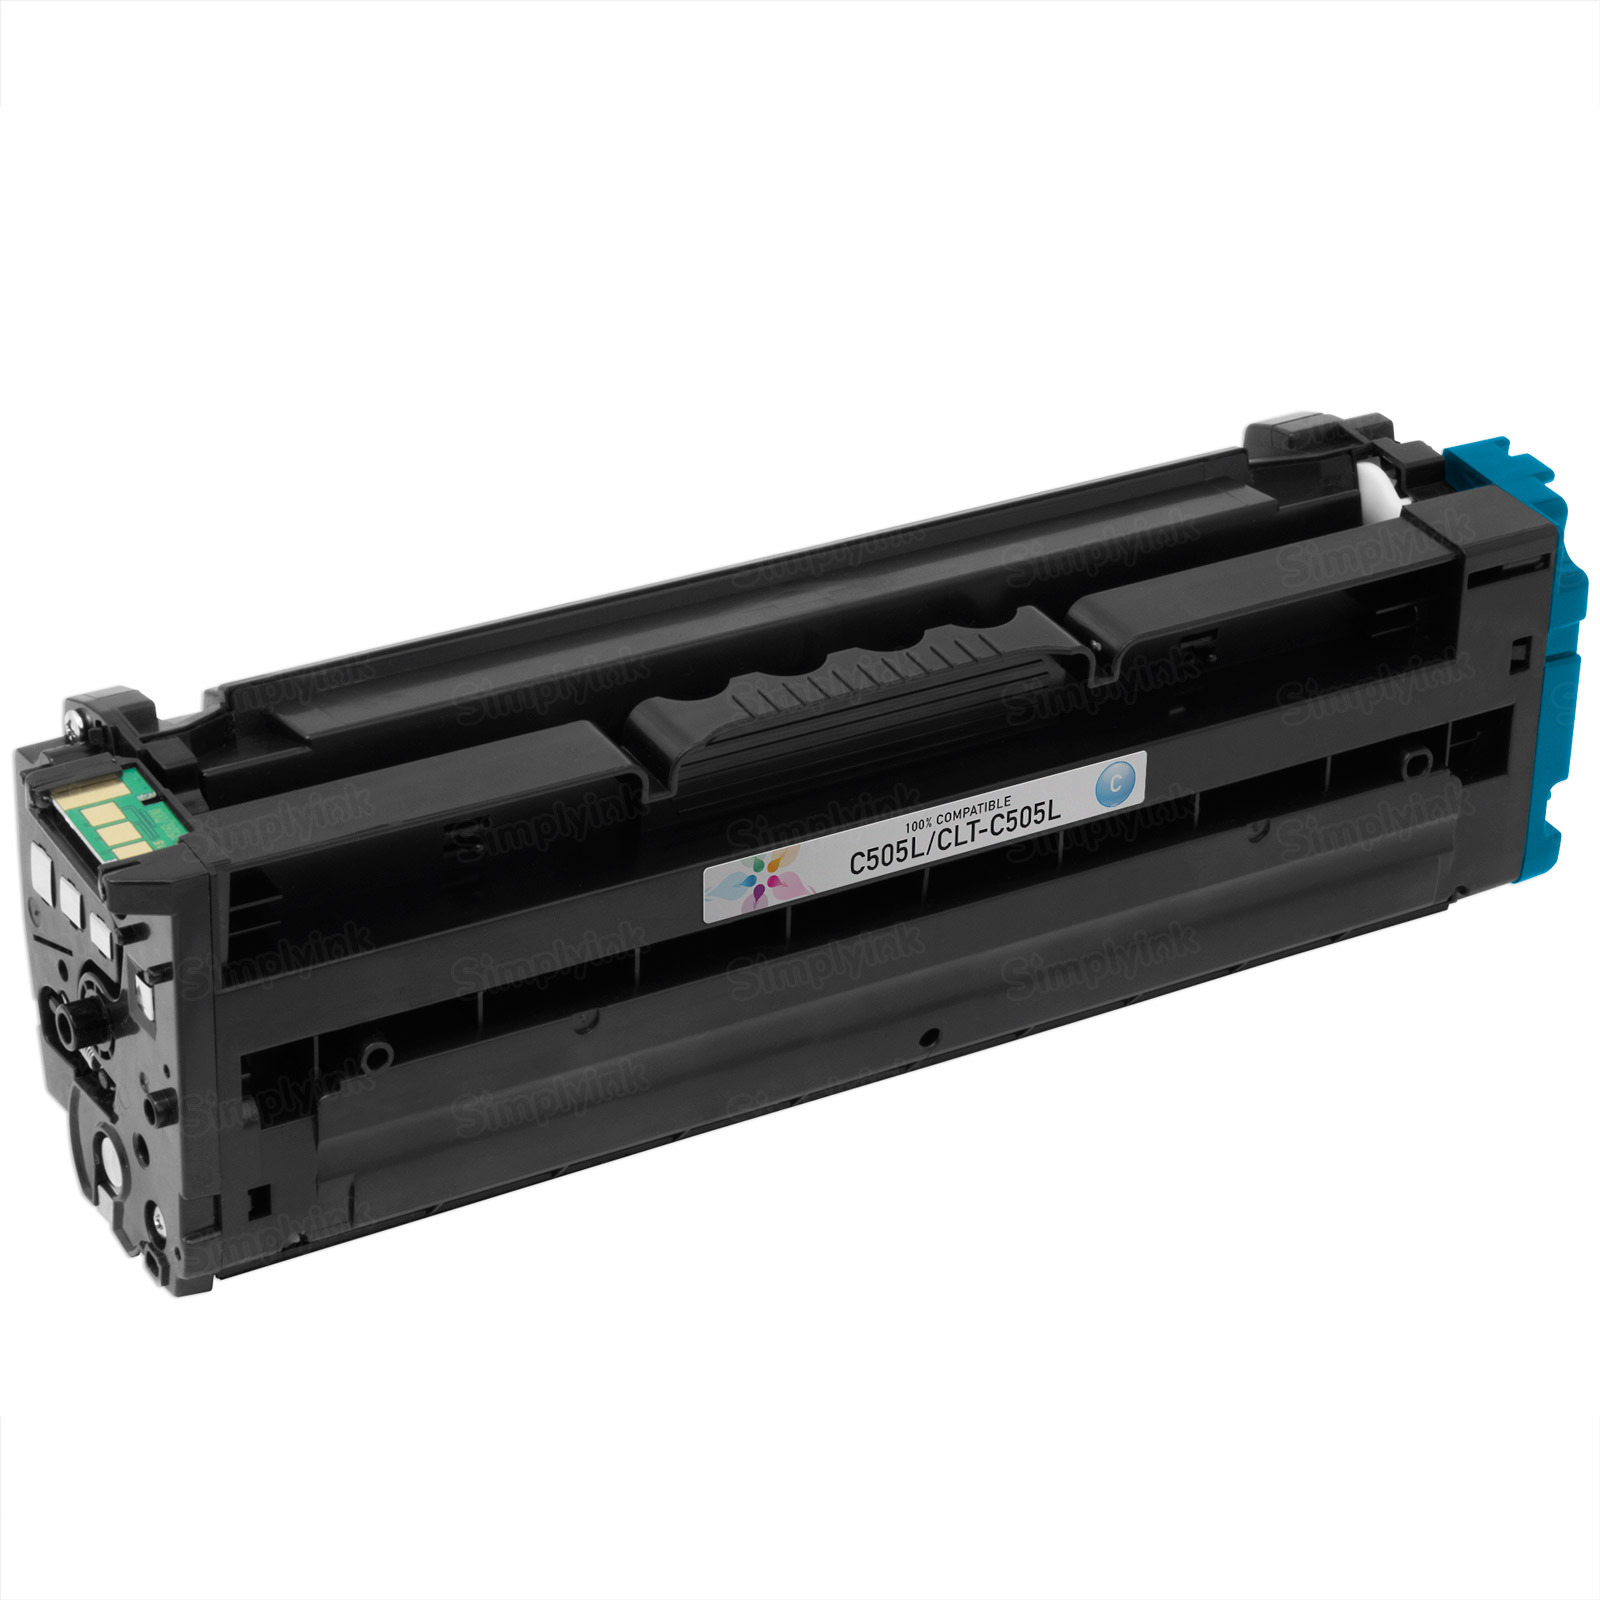 Compatible Cyan Toner for Samsung C505L